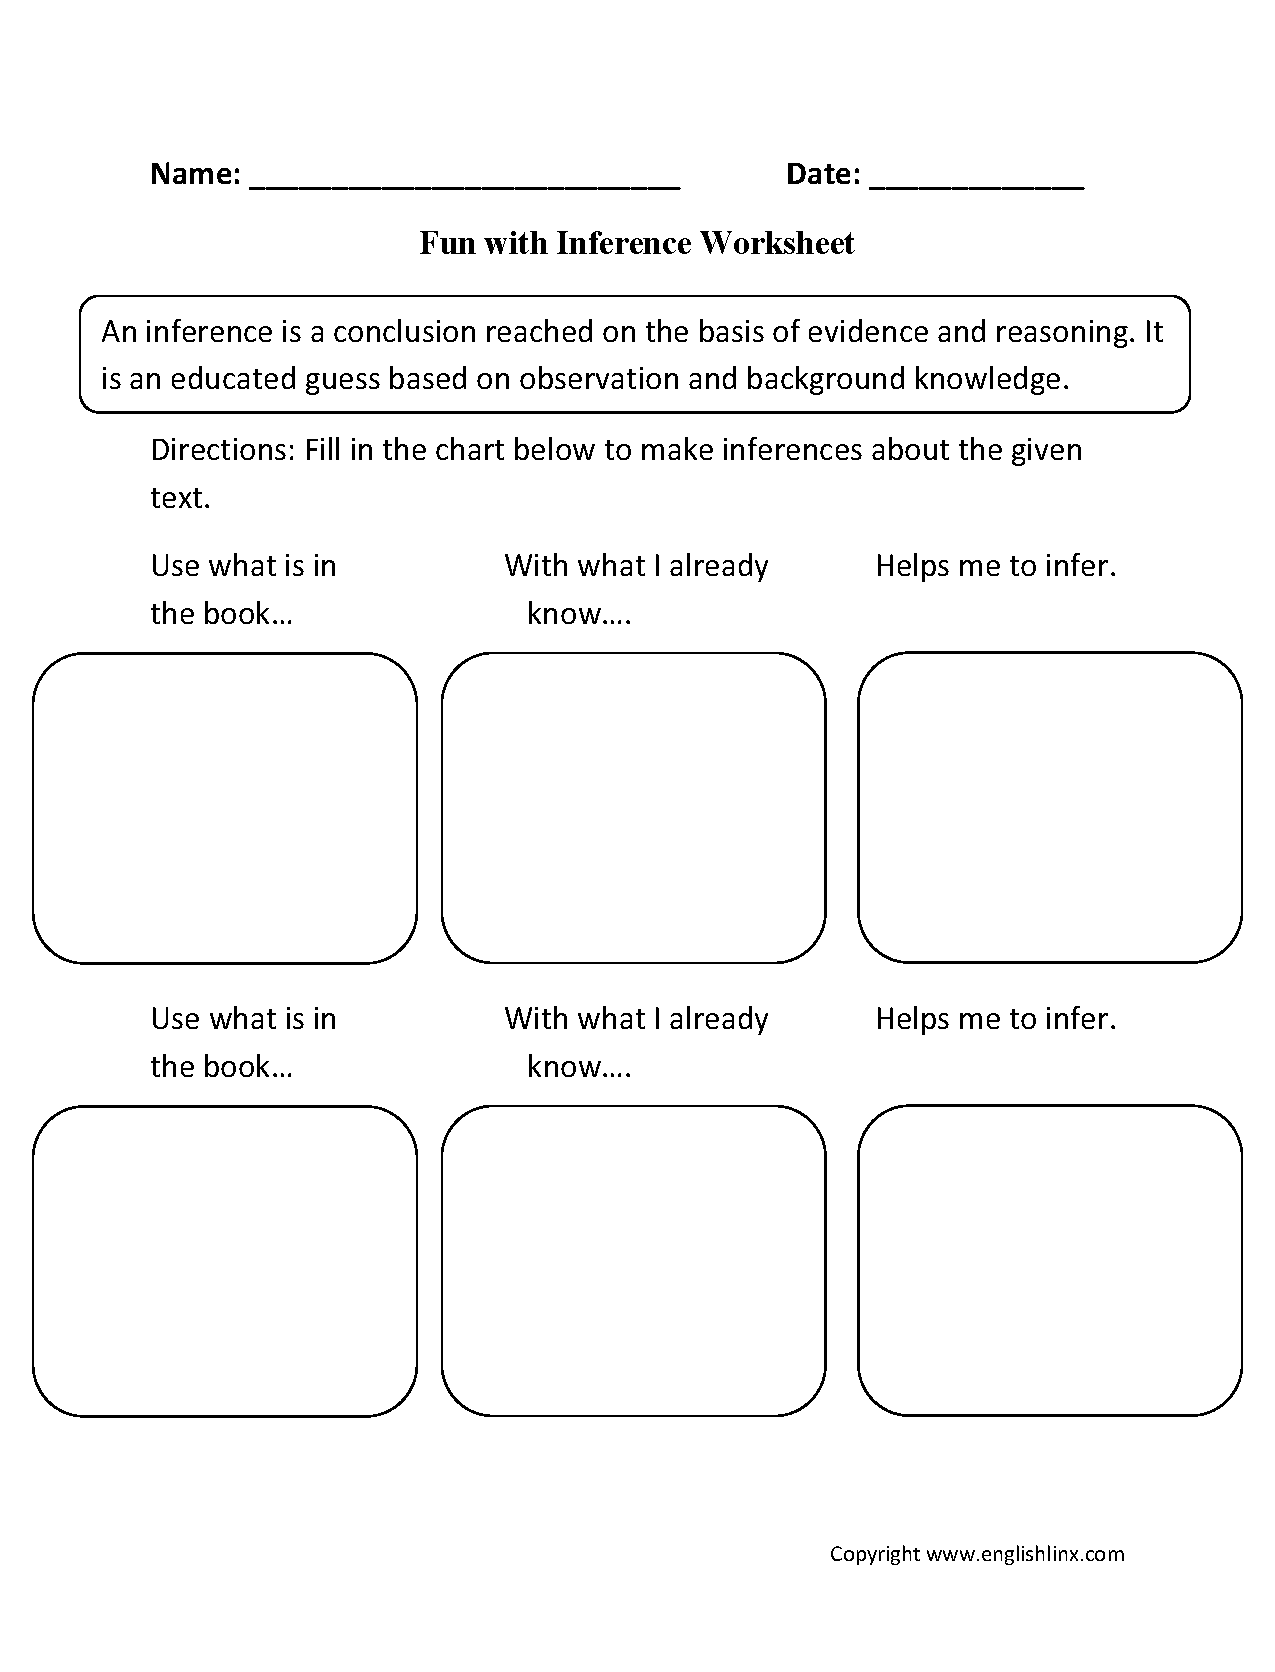 worksheet Observation Vs Inference Worksheet observation and inference worksheets free library fun with ference w ksheets educ ti p terest ference